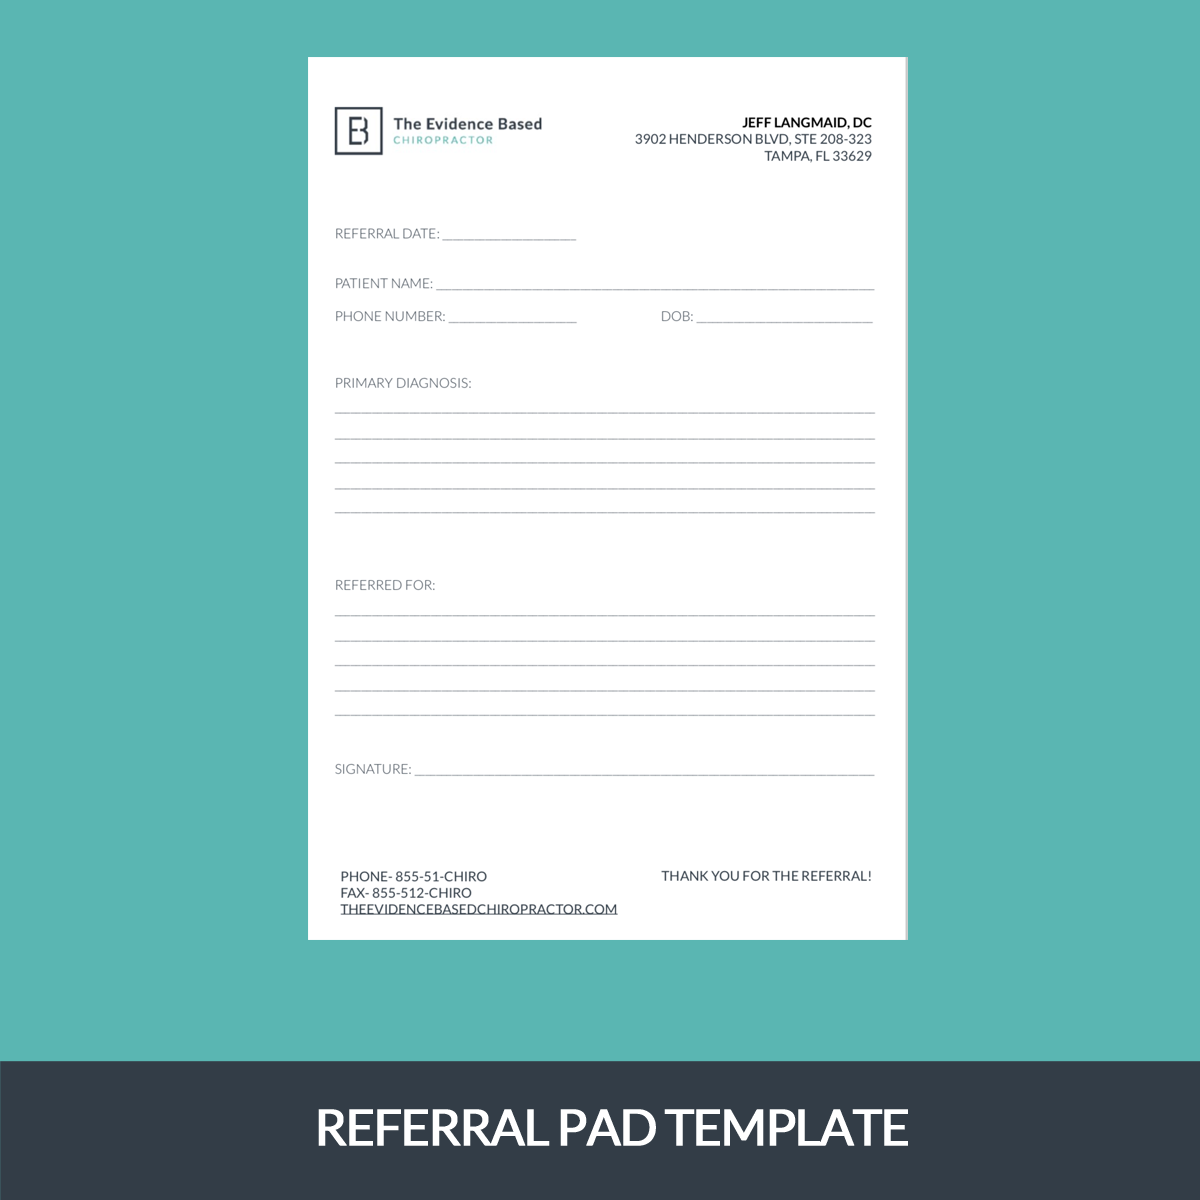 REFERRAL PAD TEMPLATE-squashed.png